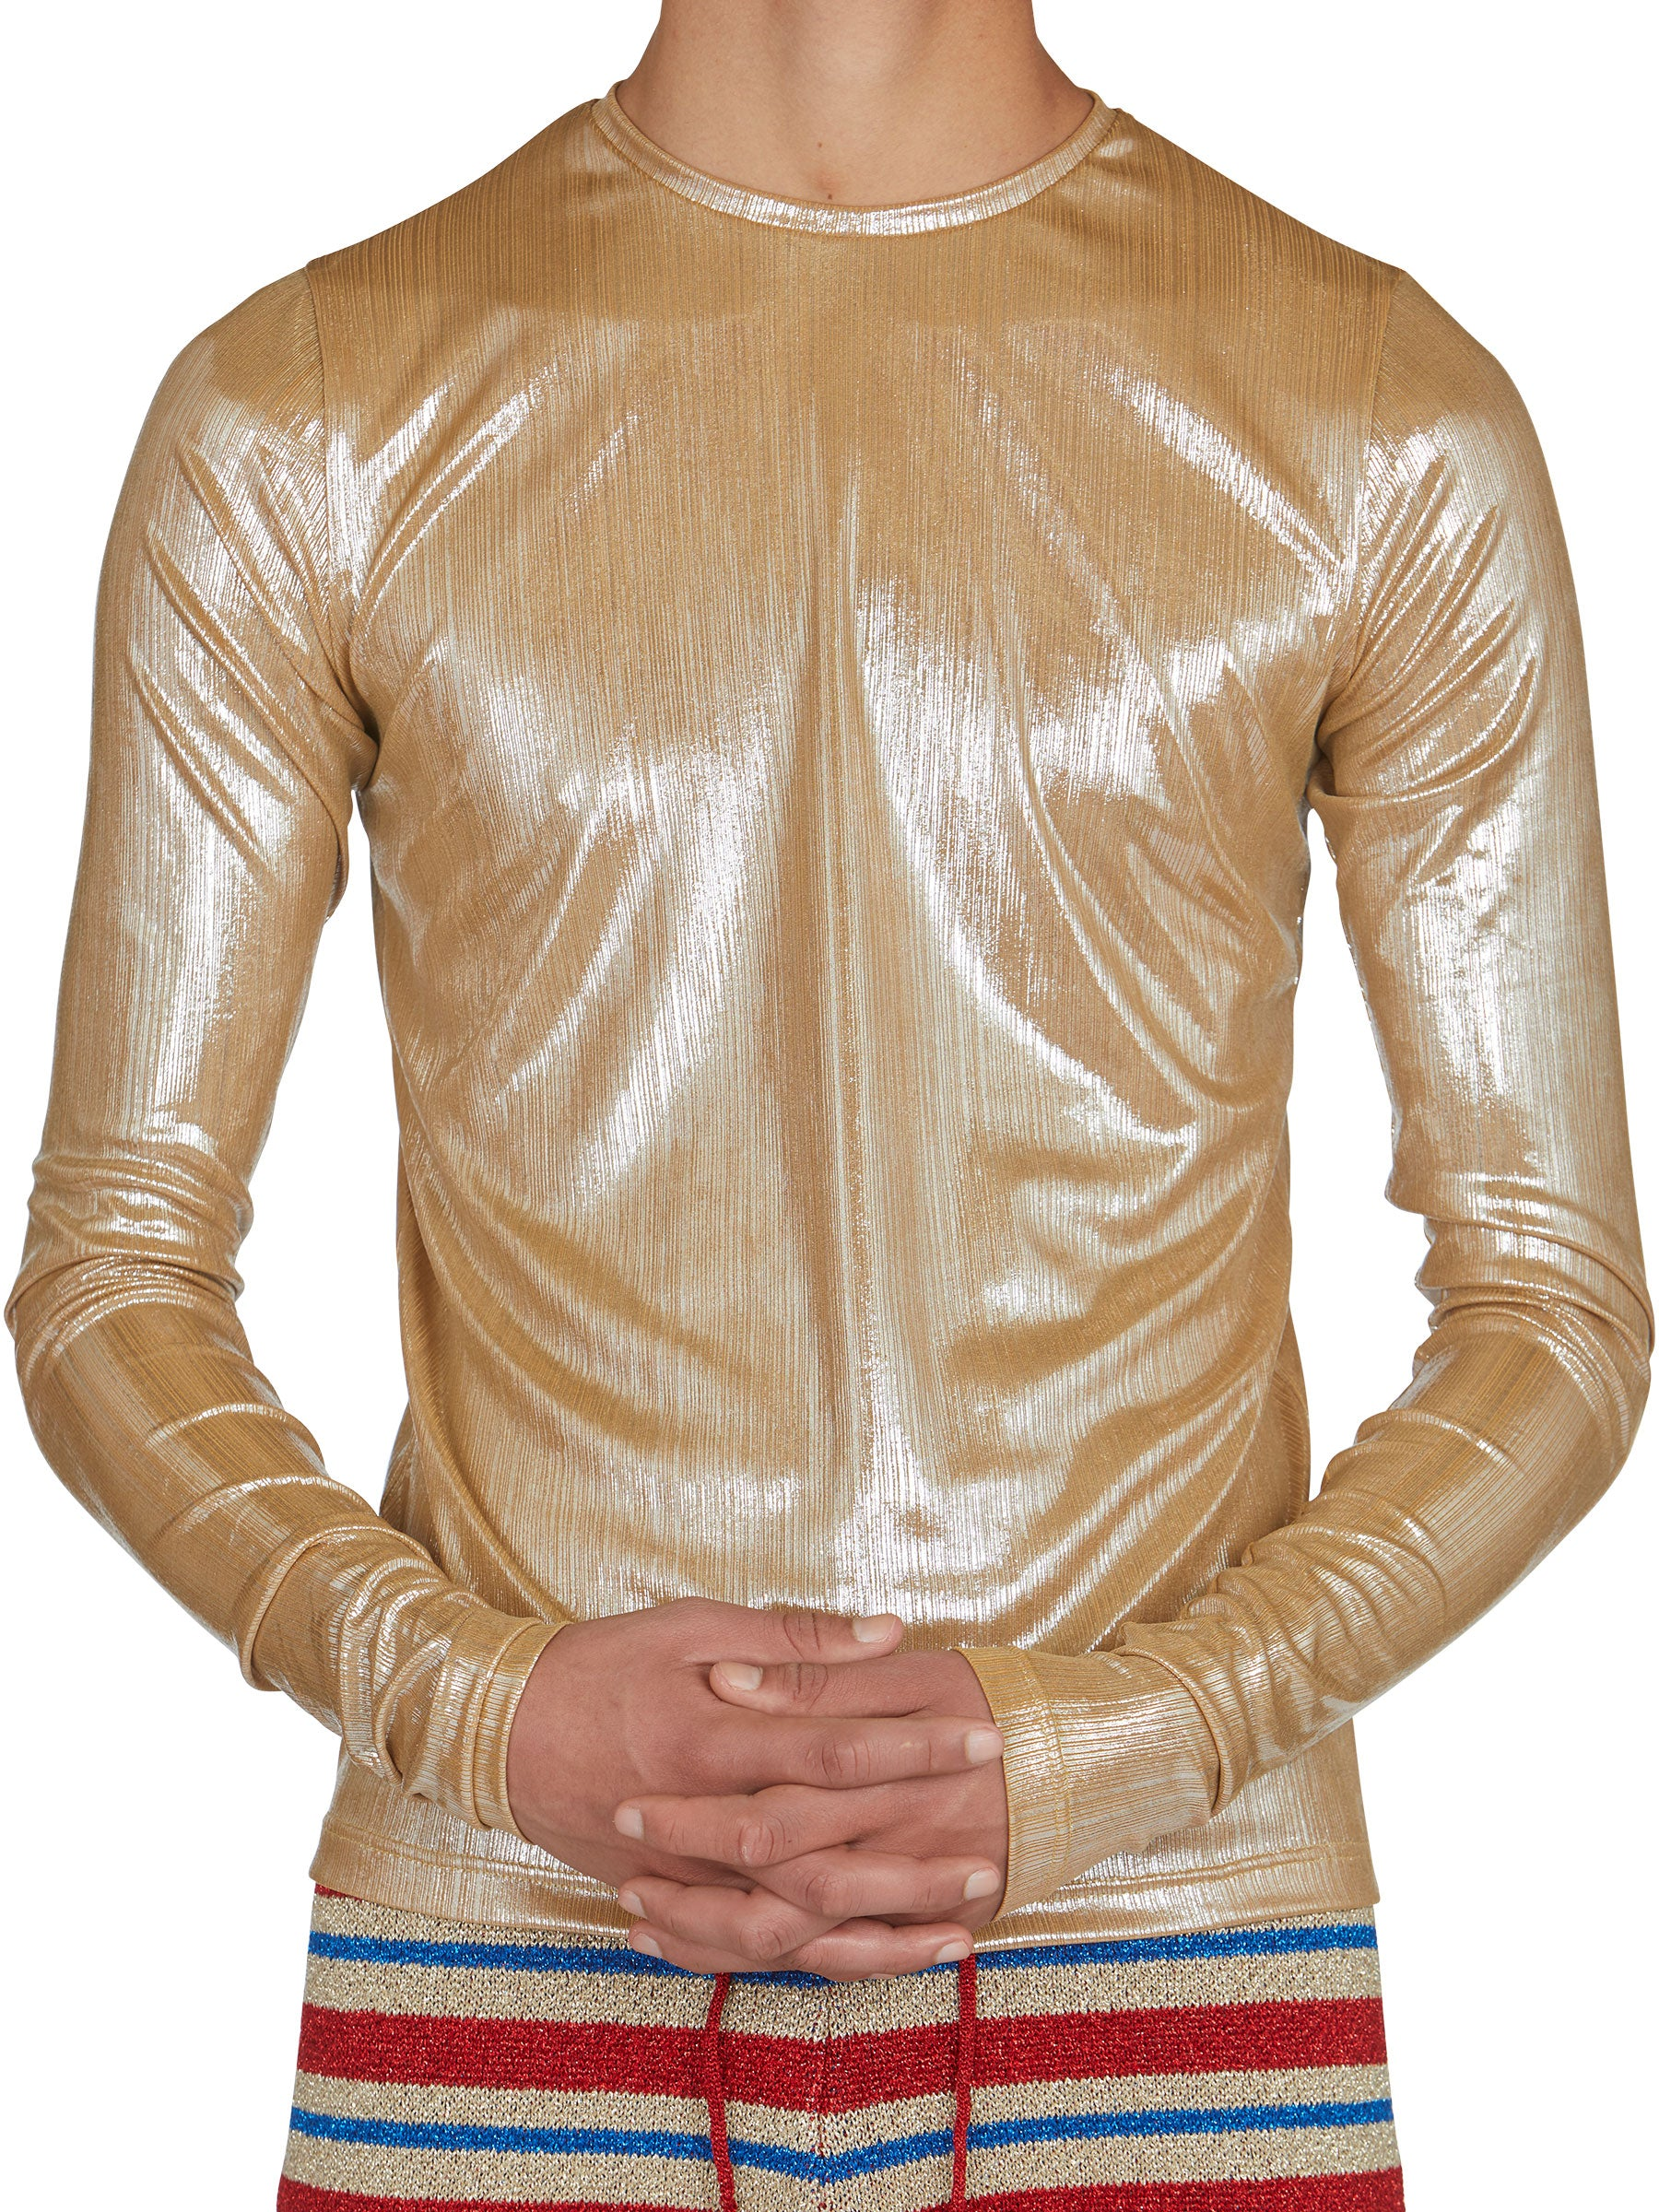 odd92 Shop Lazoschmidl Spring/Summer 2019 Menswear Blanche Foil Pleat Top - 5